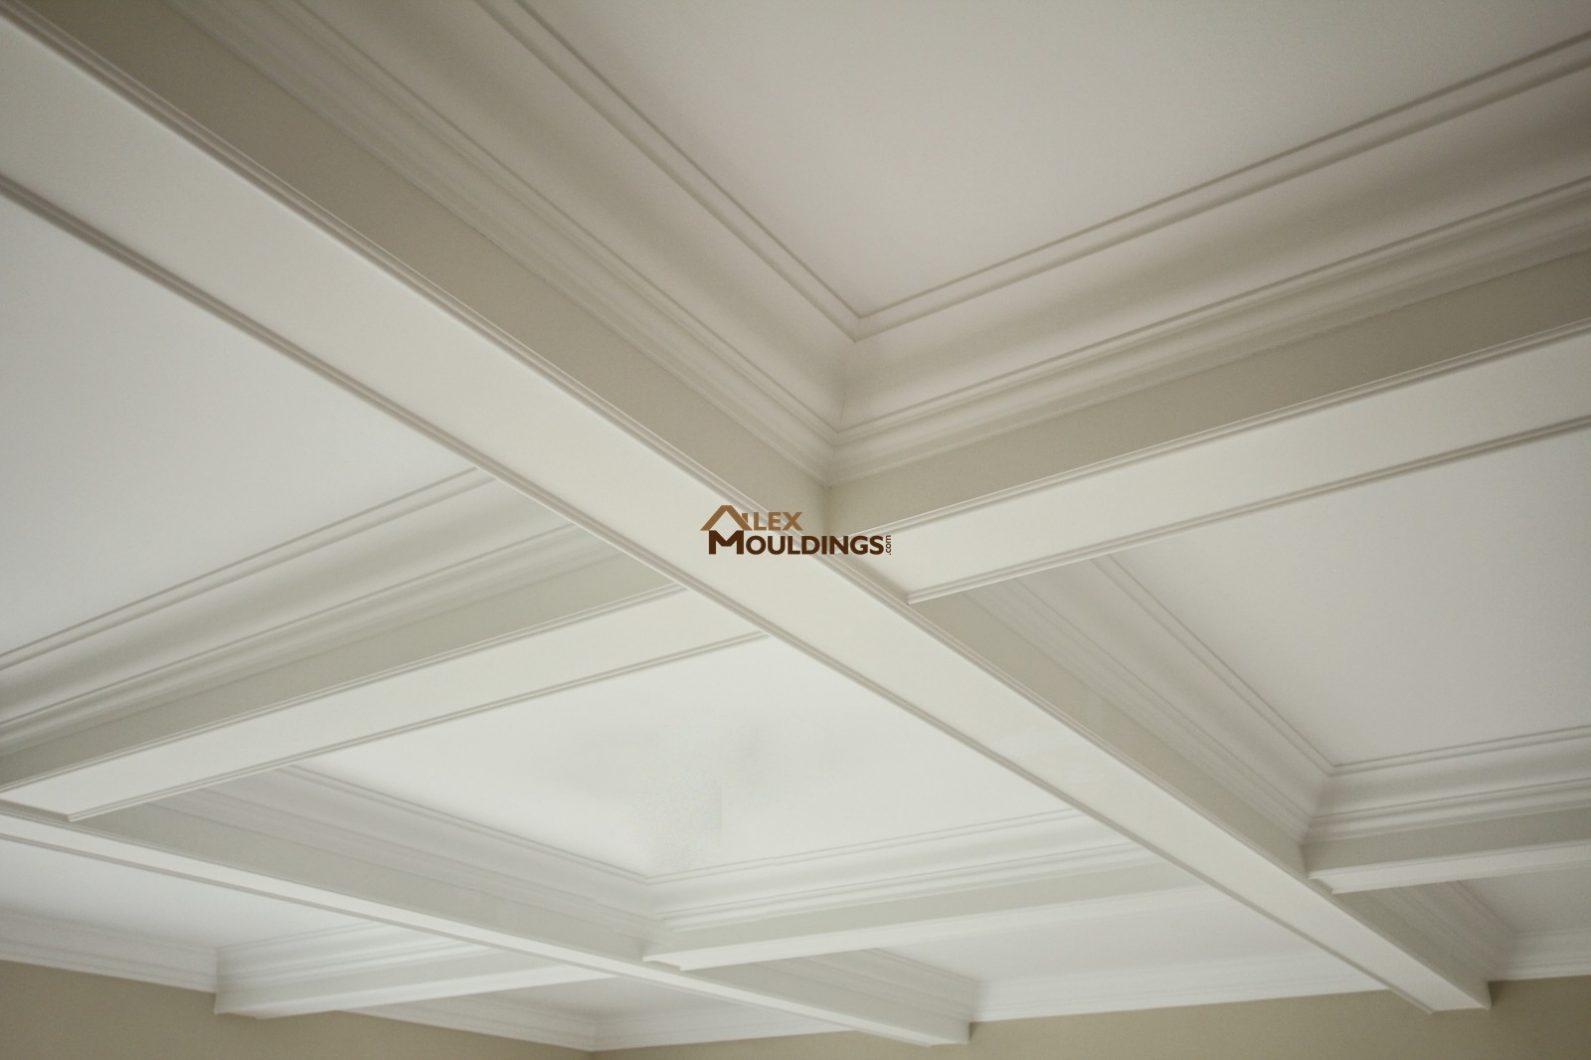 Kitchen Organizers Ideas 17 Special Coffered Waffle Ceilings Making House Look So